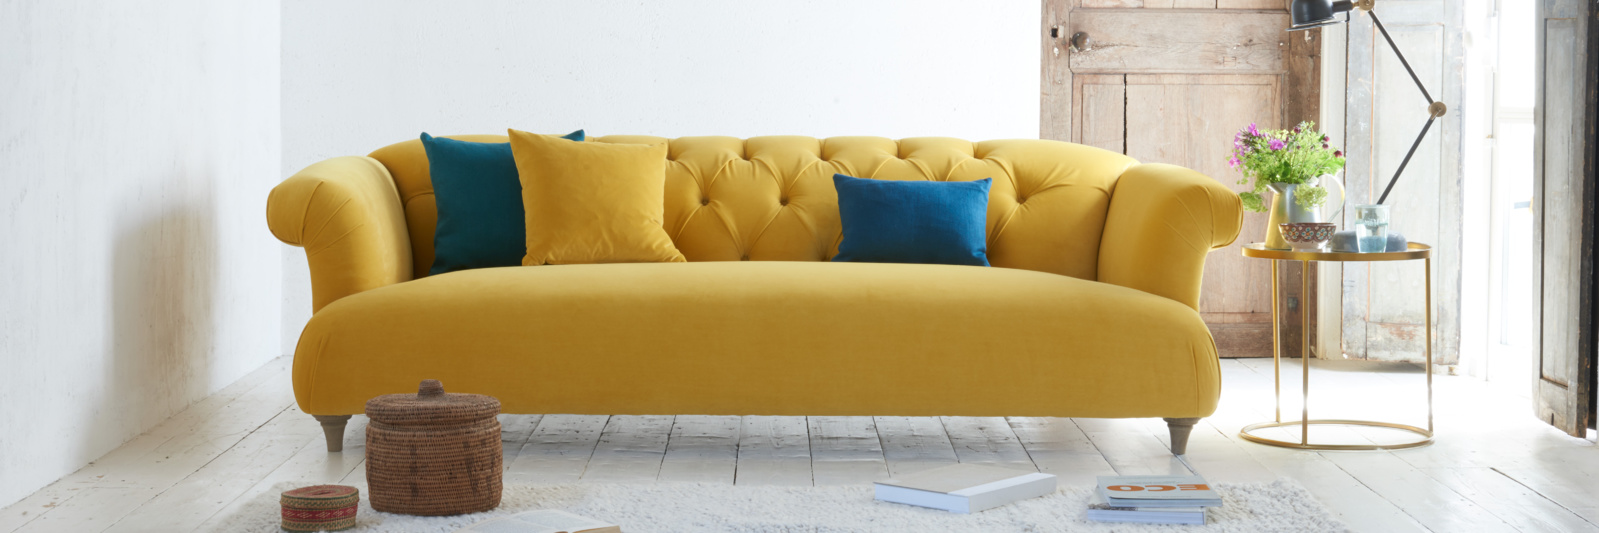 yellow sofa dixie yellow velvet sofa VFXYQEU